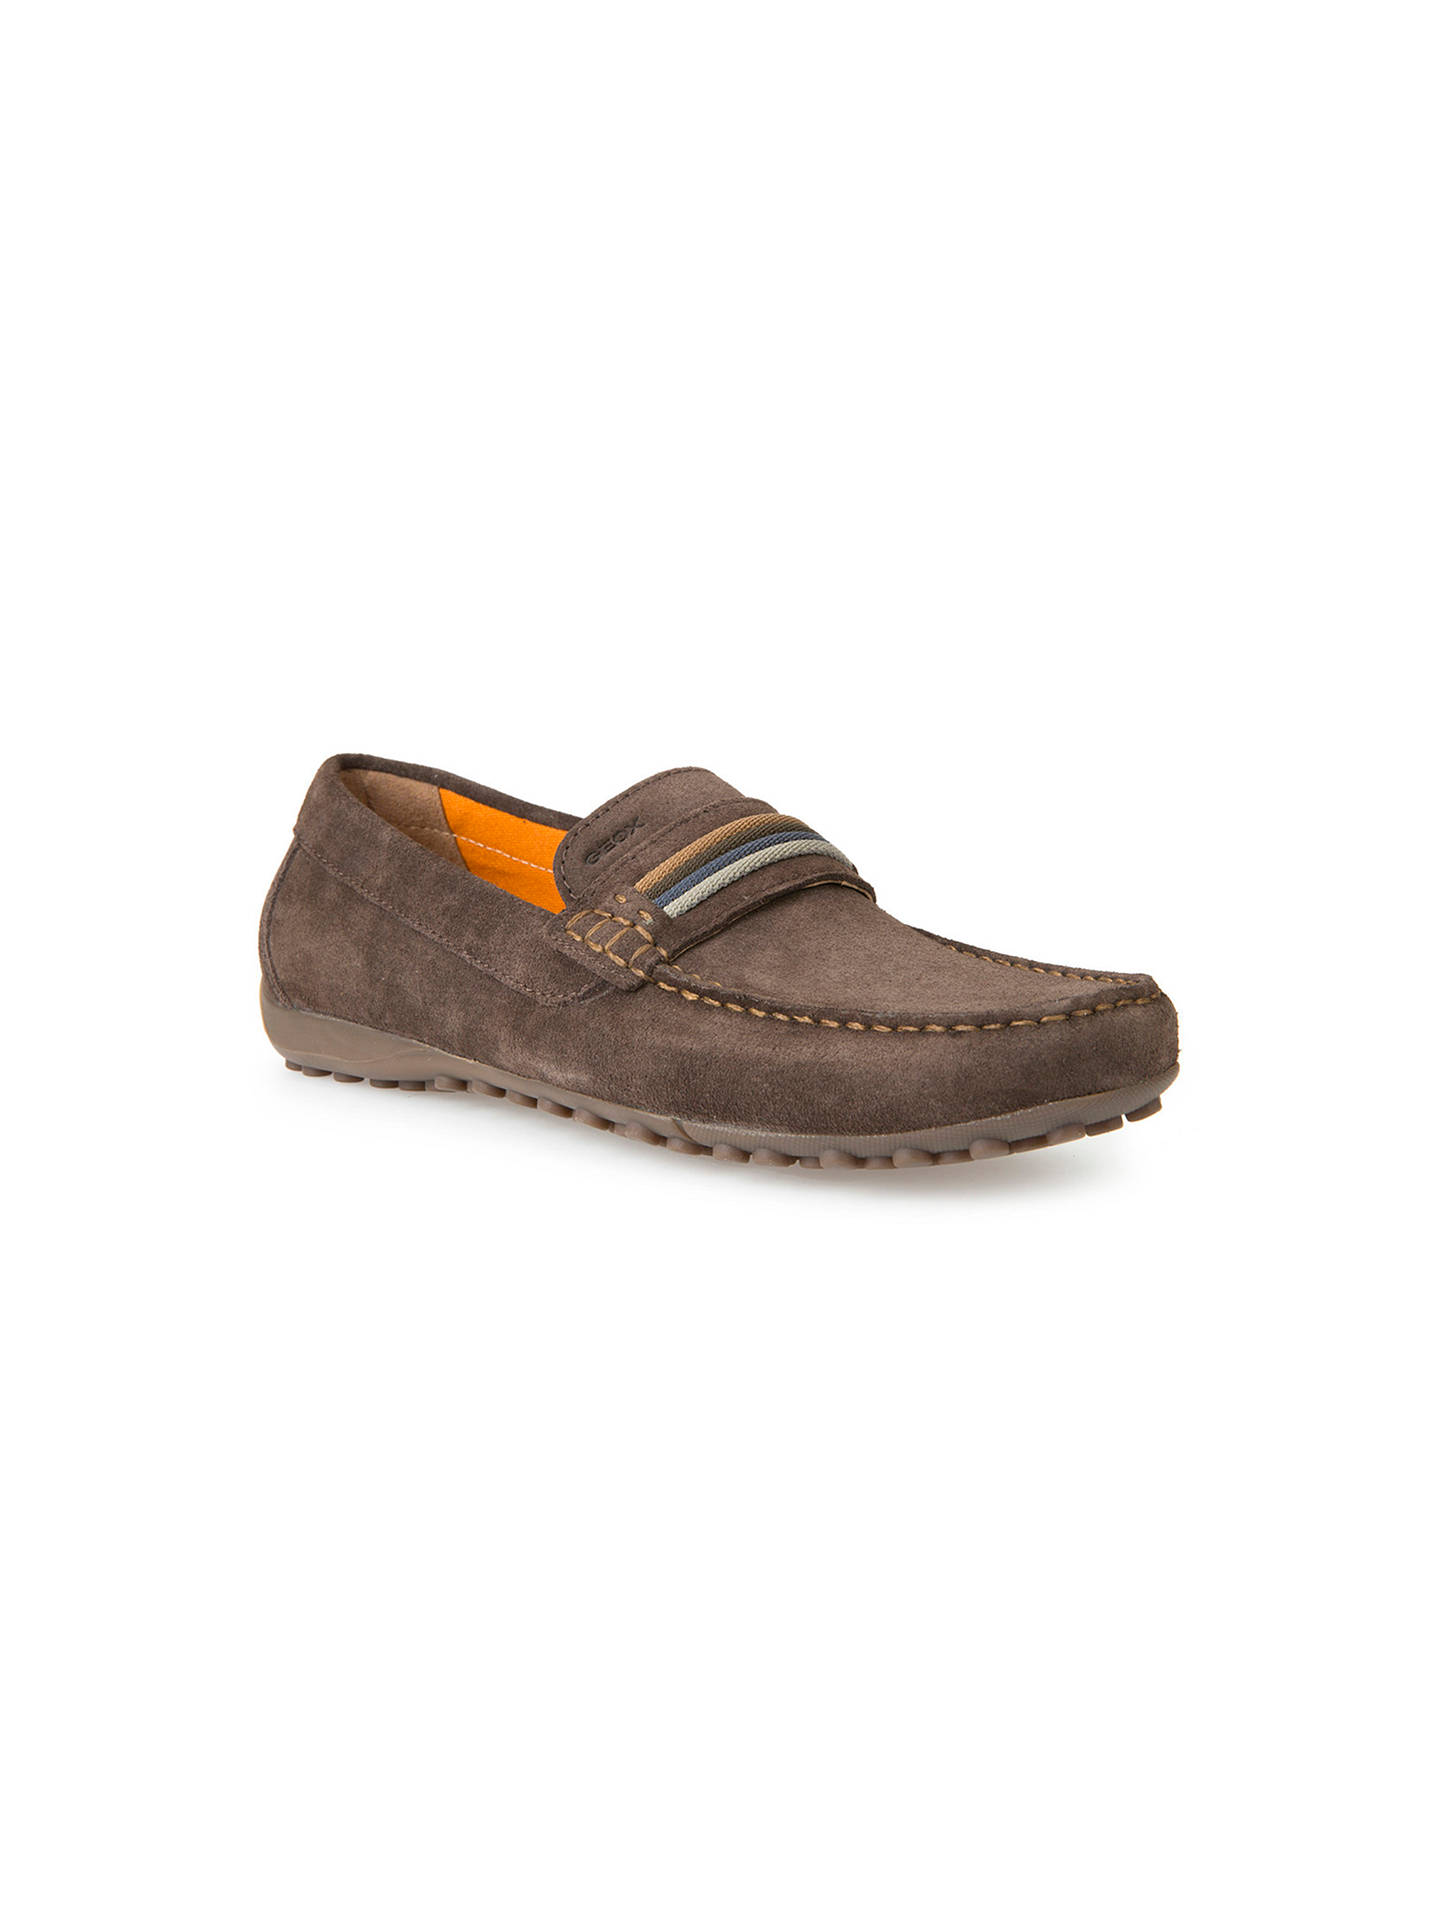 e5af99994effa Buy Geox Snake Moccasin Shoes, Chocolate, 7 Online at johnlewis.com ...